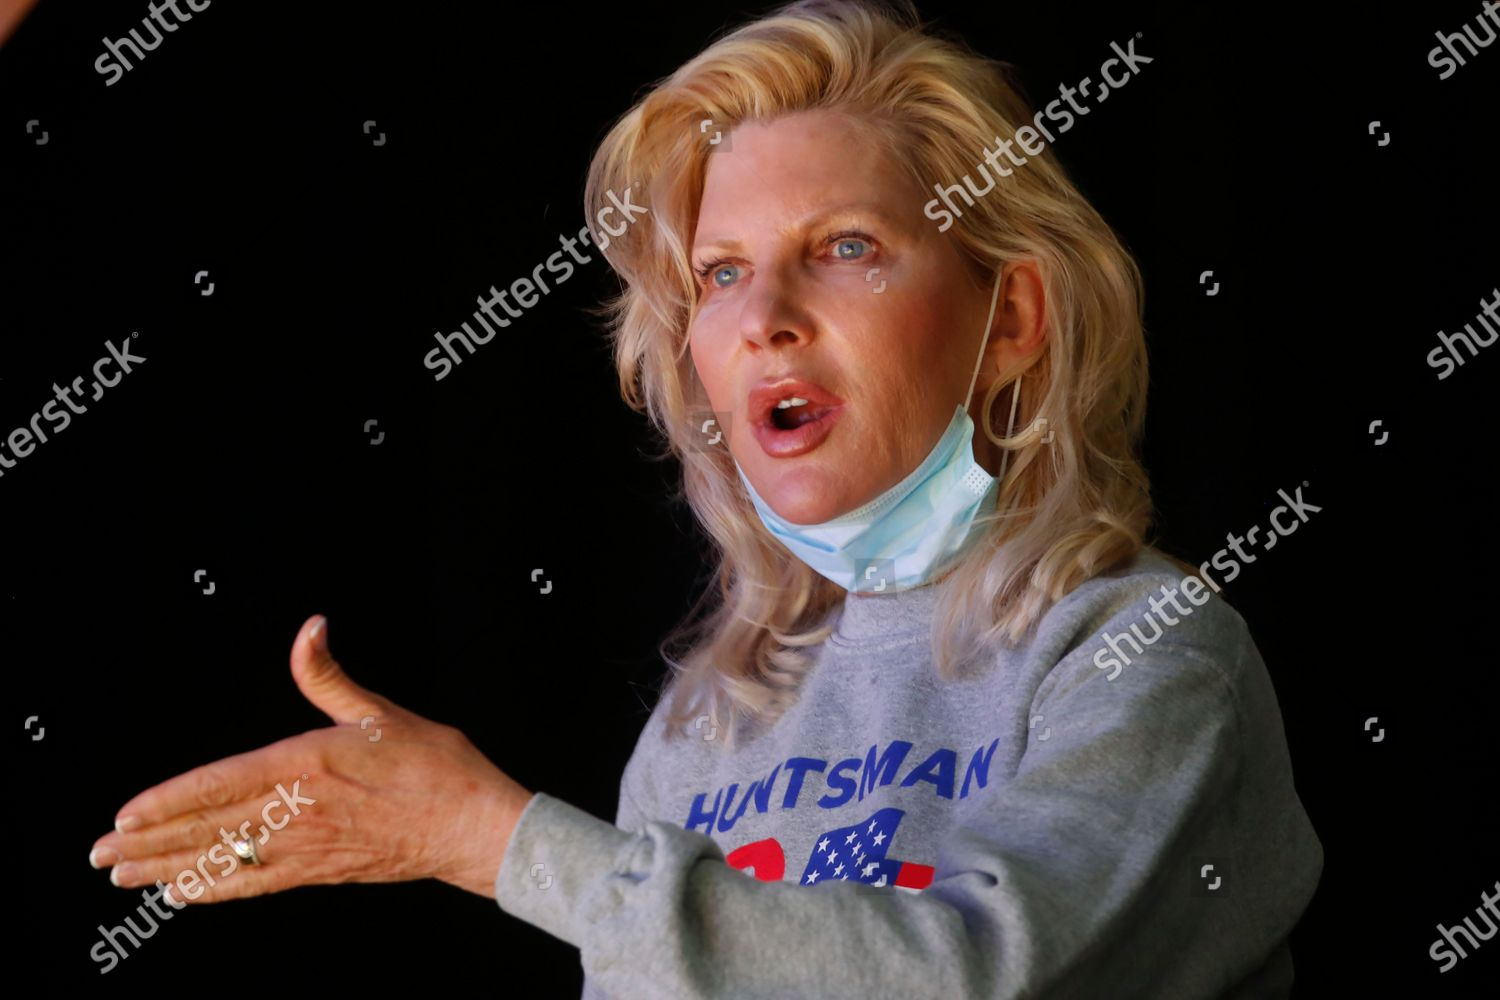 Stock photo of Virus Outbreak Huntsman, Salt Lake City, United States - 20 May 2020